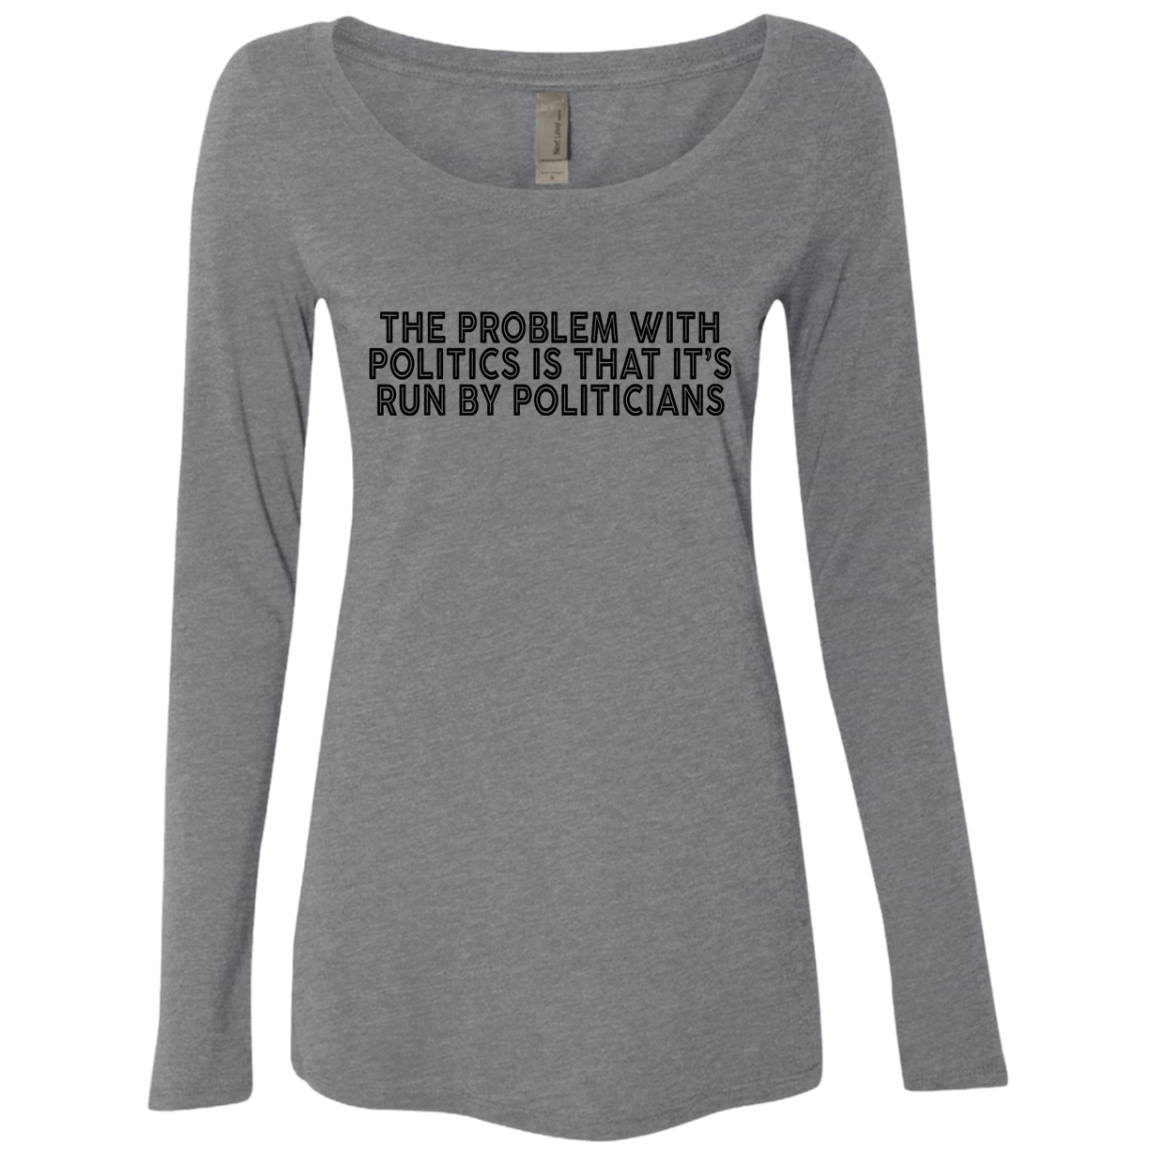 The Problem With Politics Is That It's Run By Politicians Women's Long Sleeve Tee